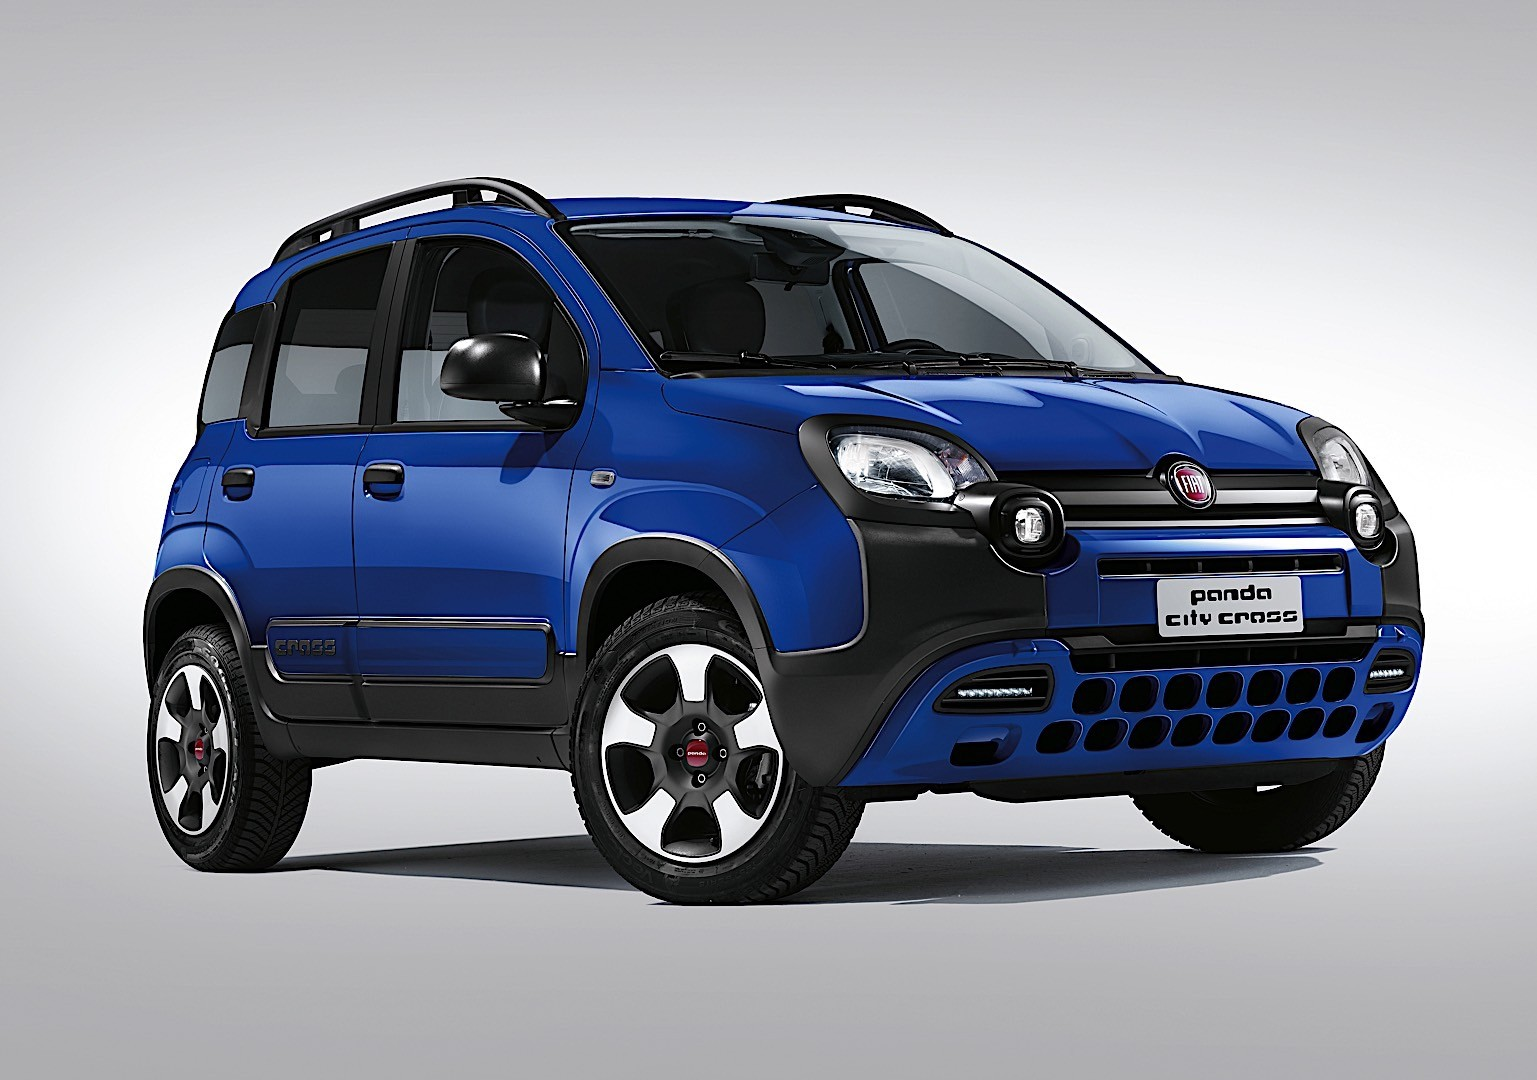 fiat panda city cross specs 2017 2018 autoevolution. Black Bedroom Furniture Sets. Home Design Ideas